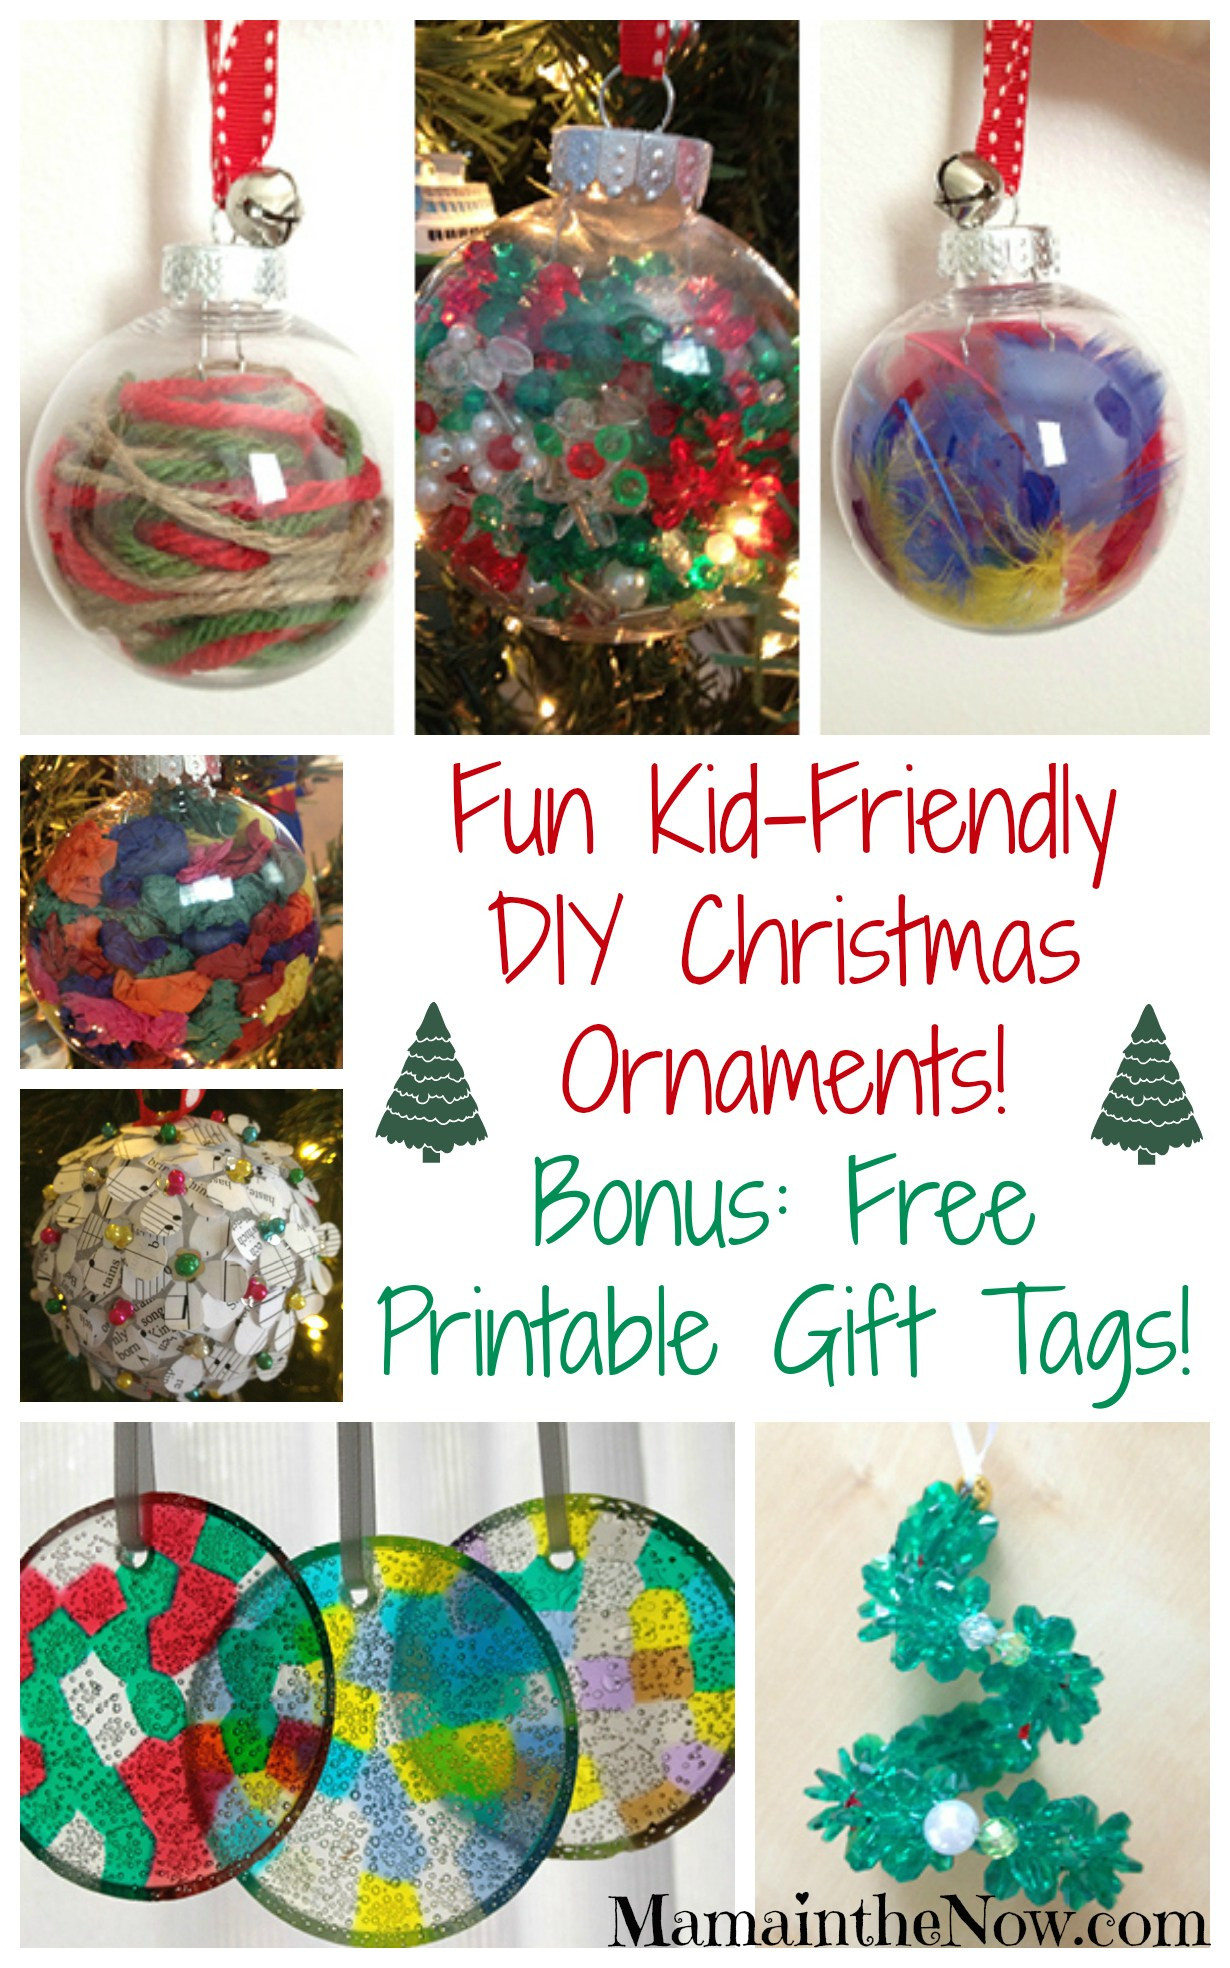 Best ideas about Christmas Ornaments DIY Kids . Save or Pin Easy Kid Friendly DIY Christmas Ornaments Now.